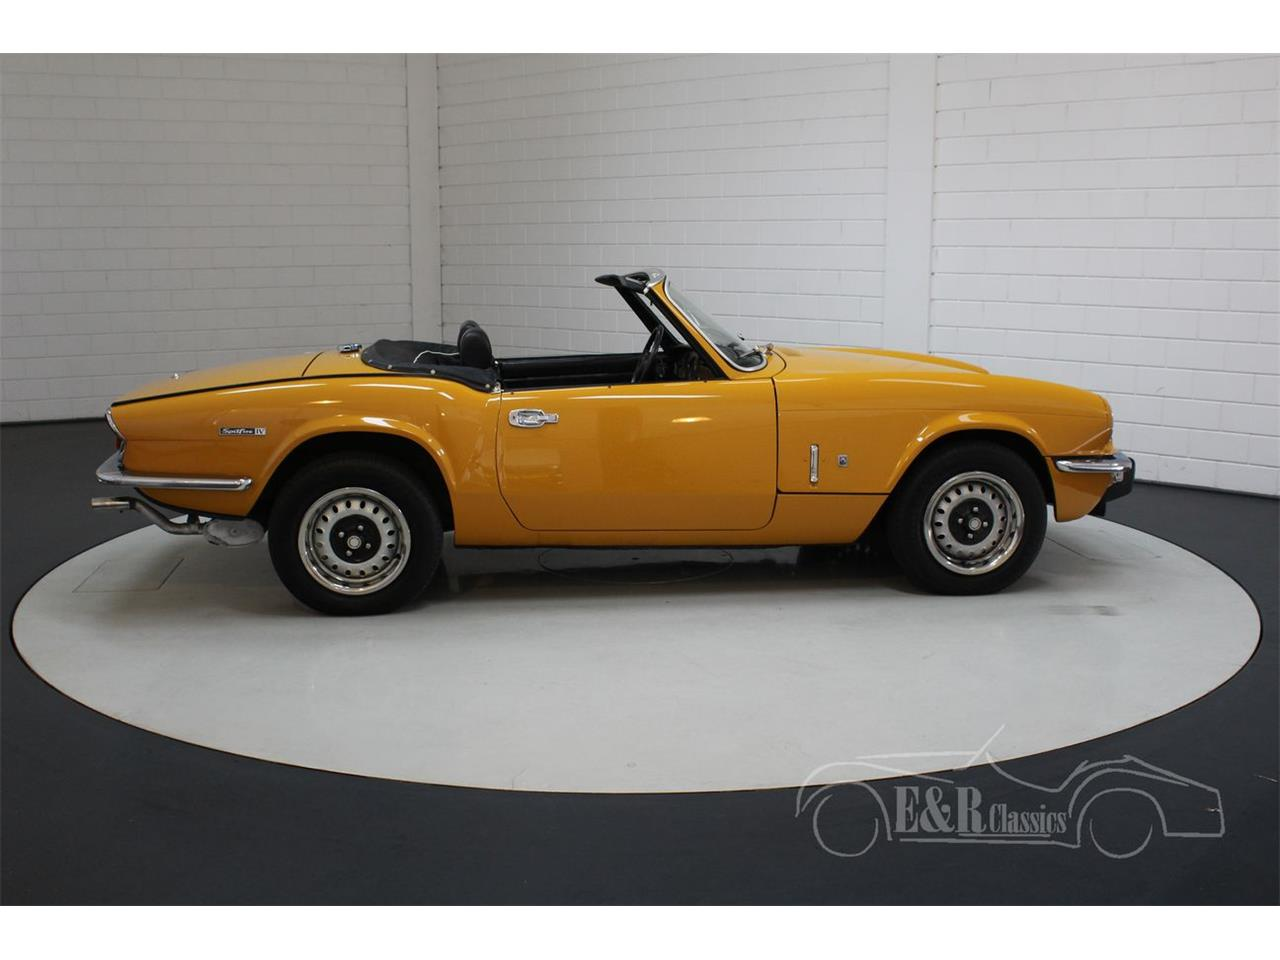 Large Picture of 1974 Spitfire - $16,850.00 - QIIQ